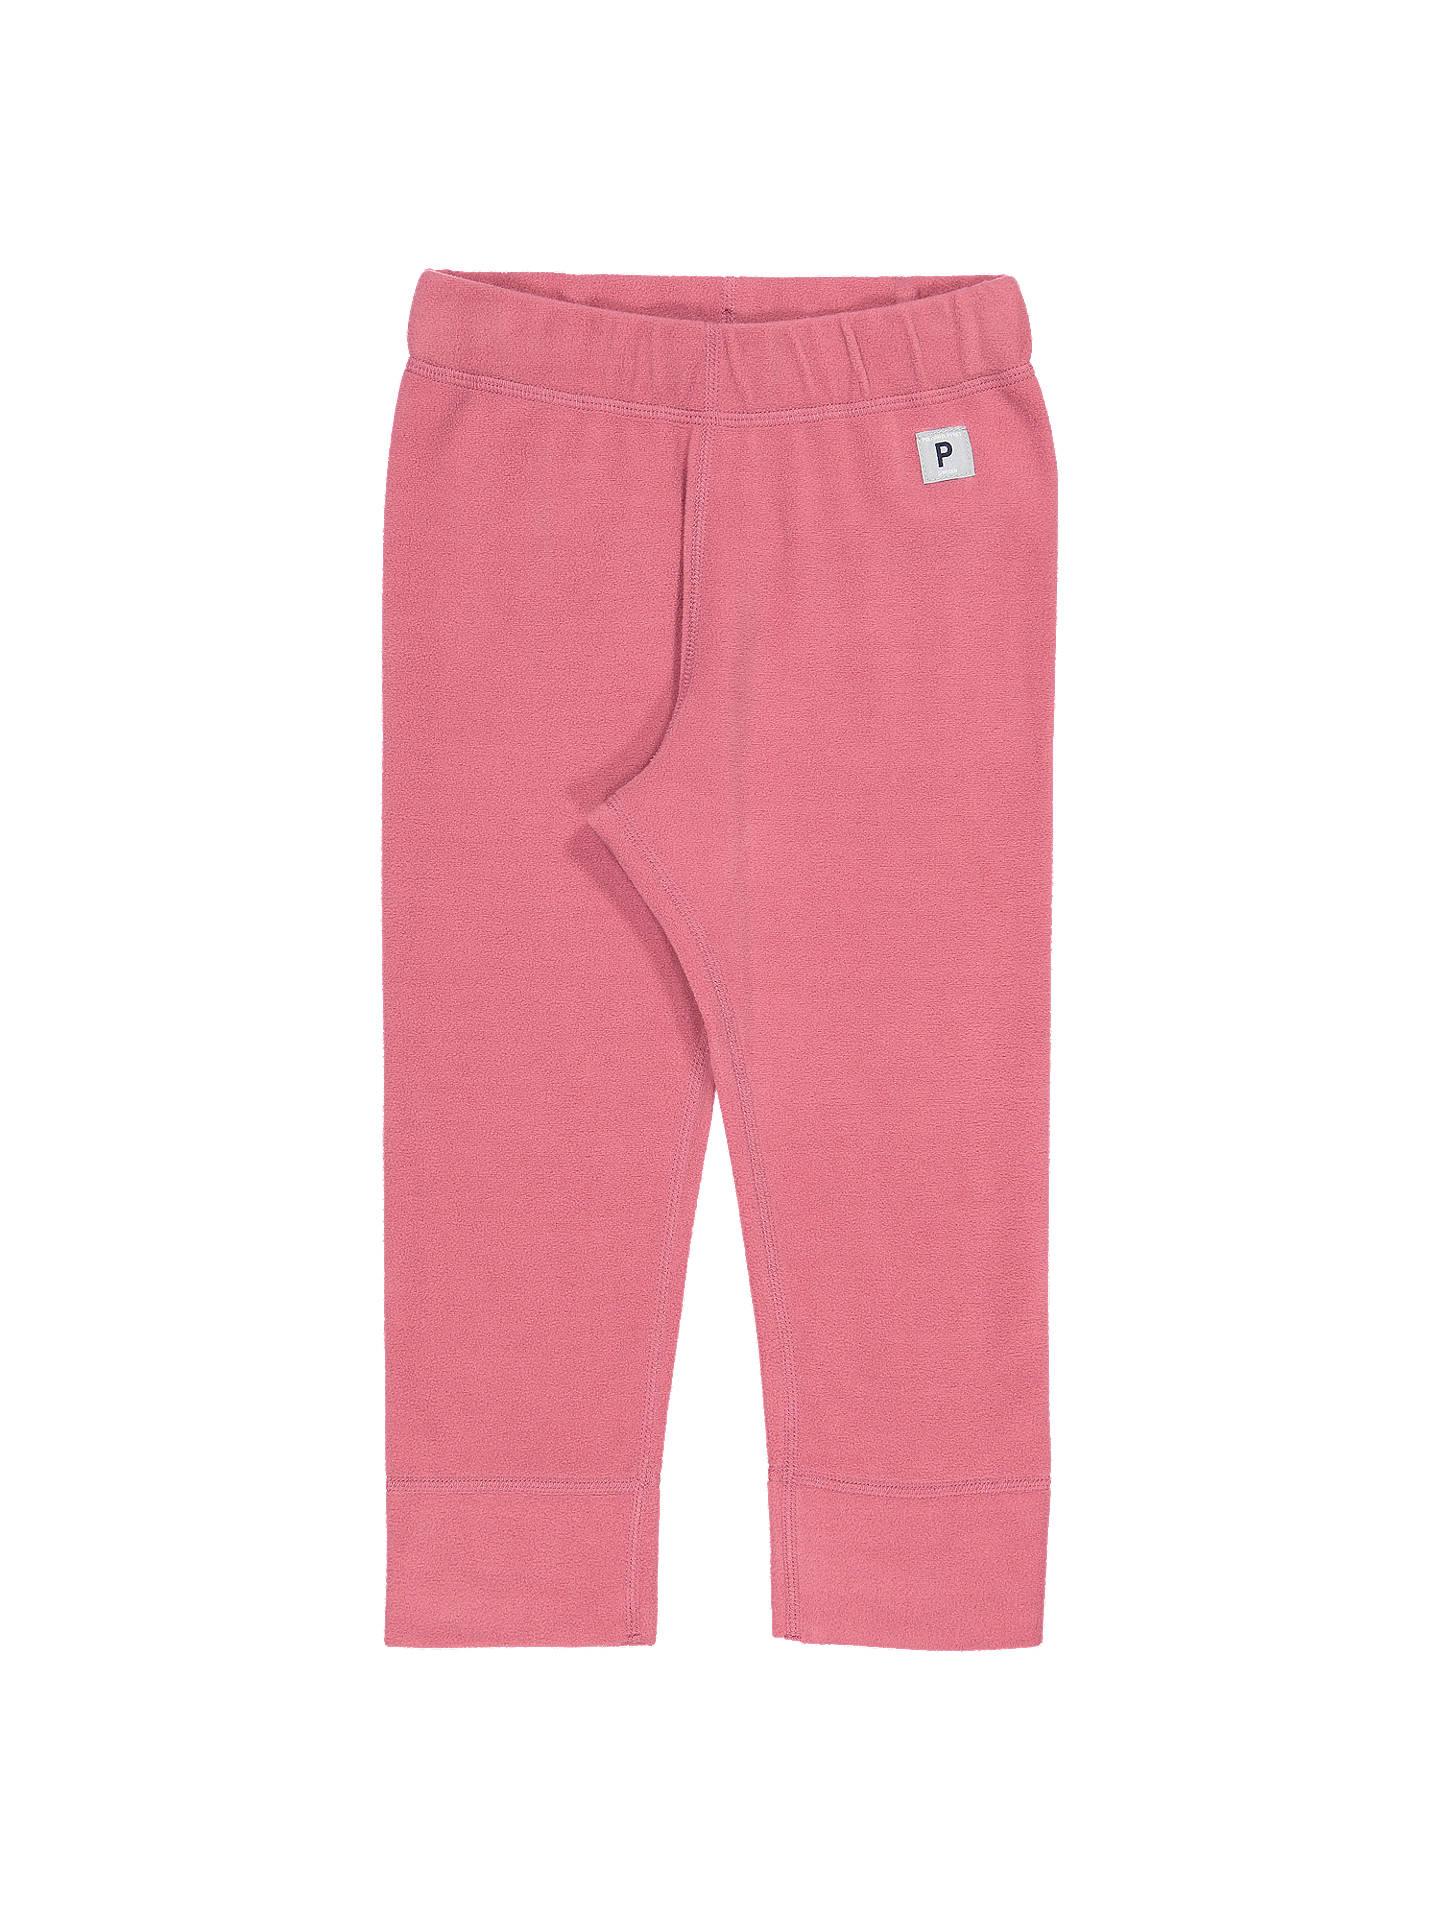 Buy Polarn O. Pyret Baby Fleece Trousers, Pink, 6-12 months Online at johnlewis.com